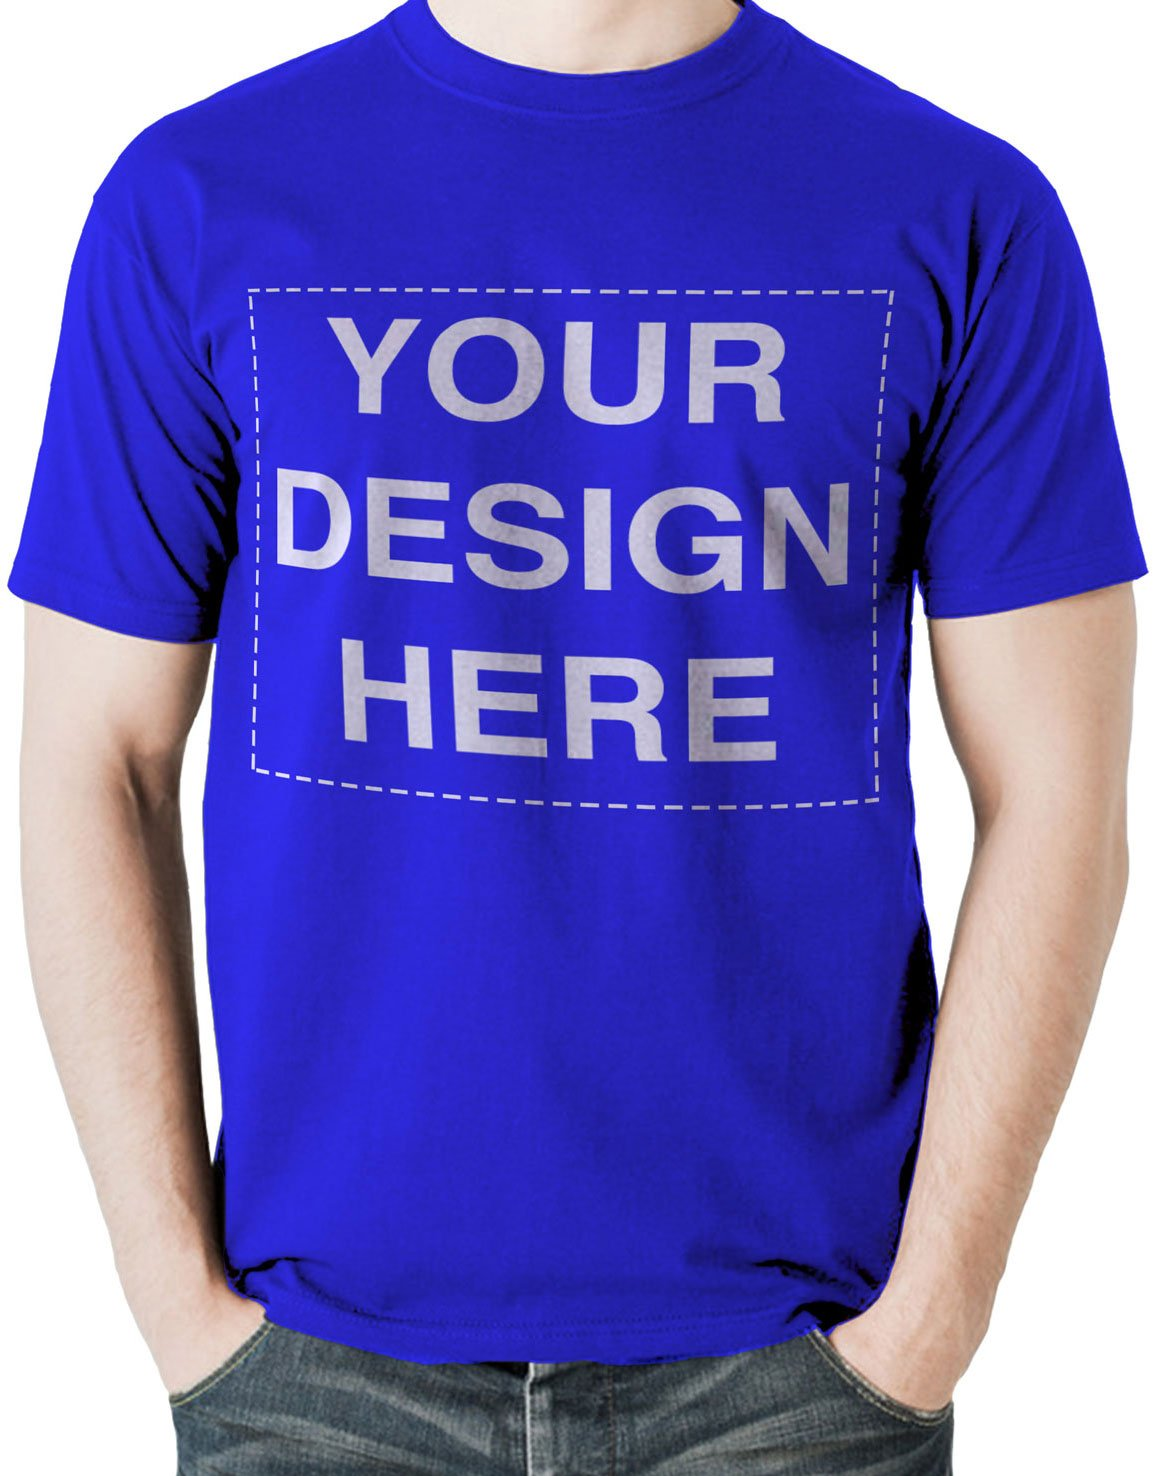 c0993bf962eb1 Custom Tshirts Design Your Own Text or Image Adult Unisex T-Shirt ...